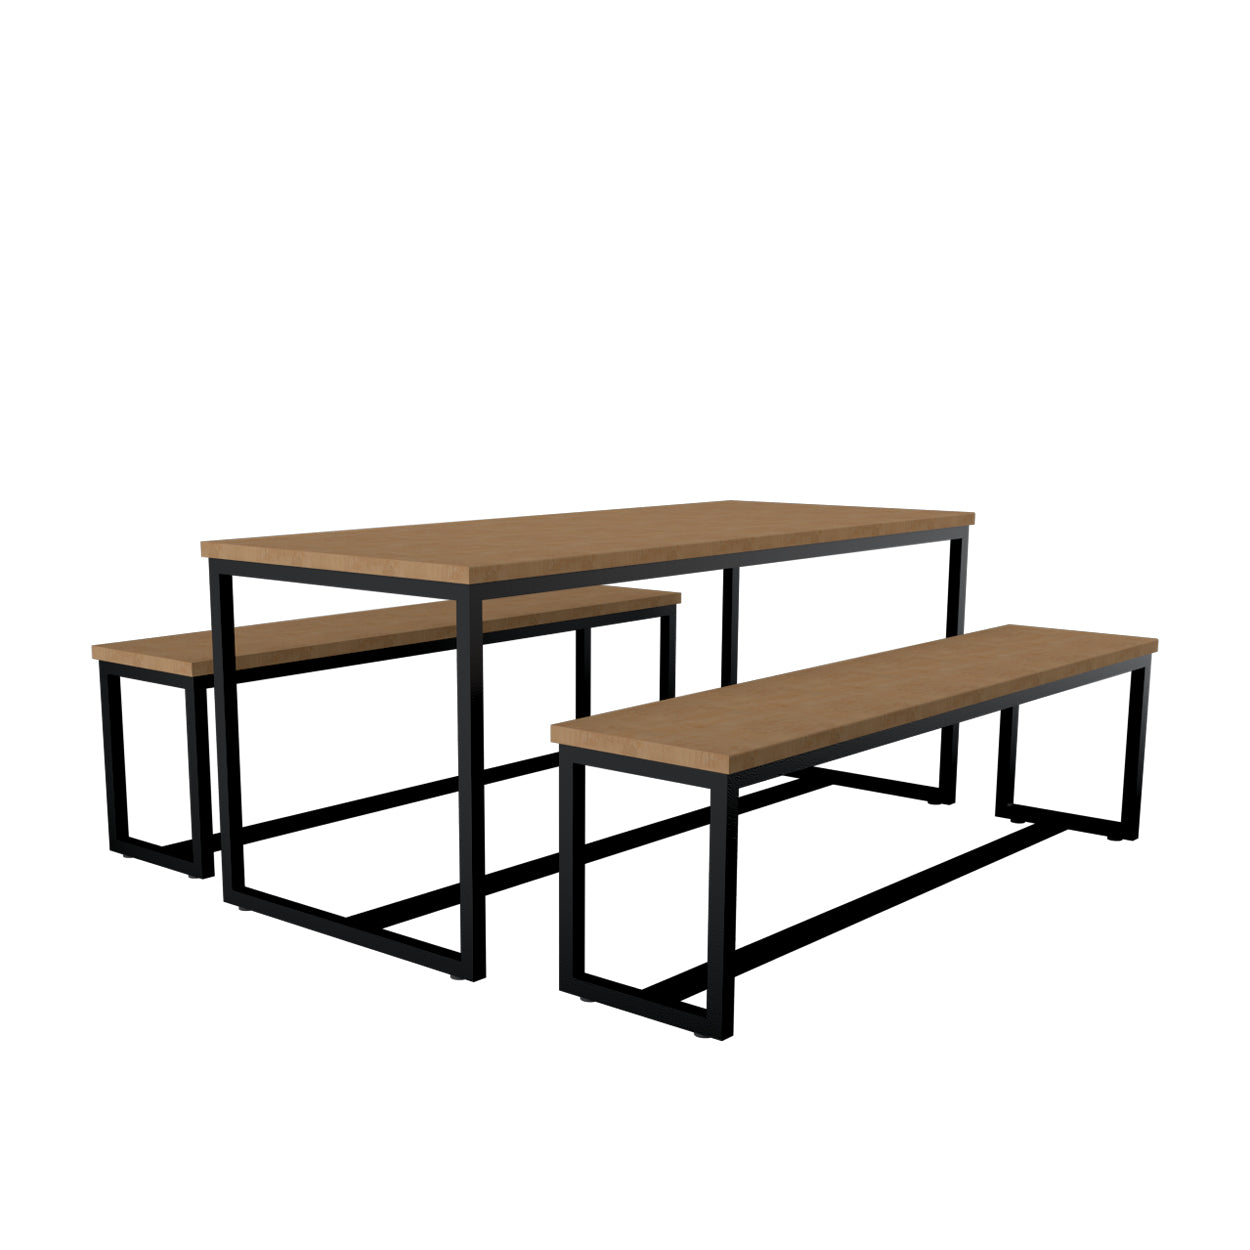 Hedcor Social Bench